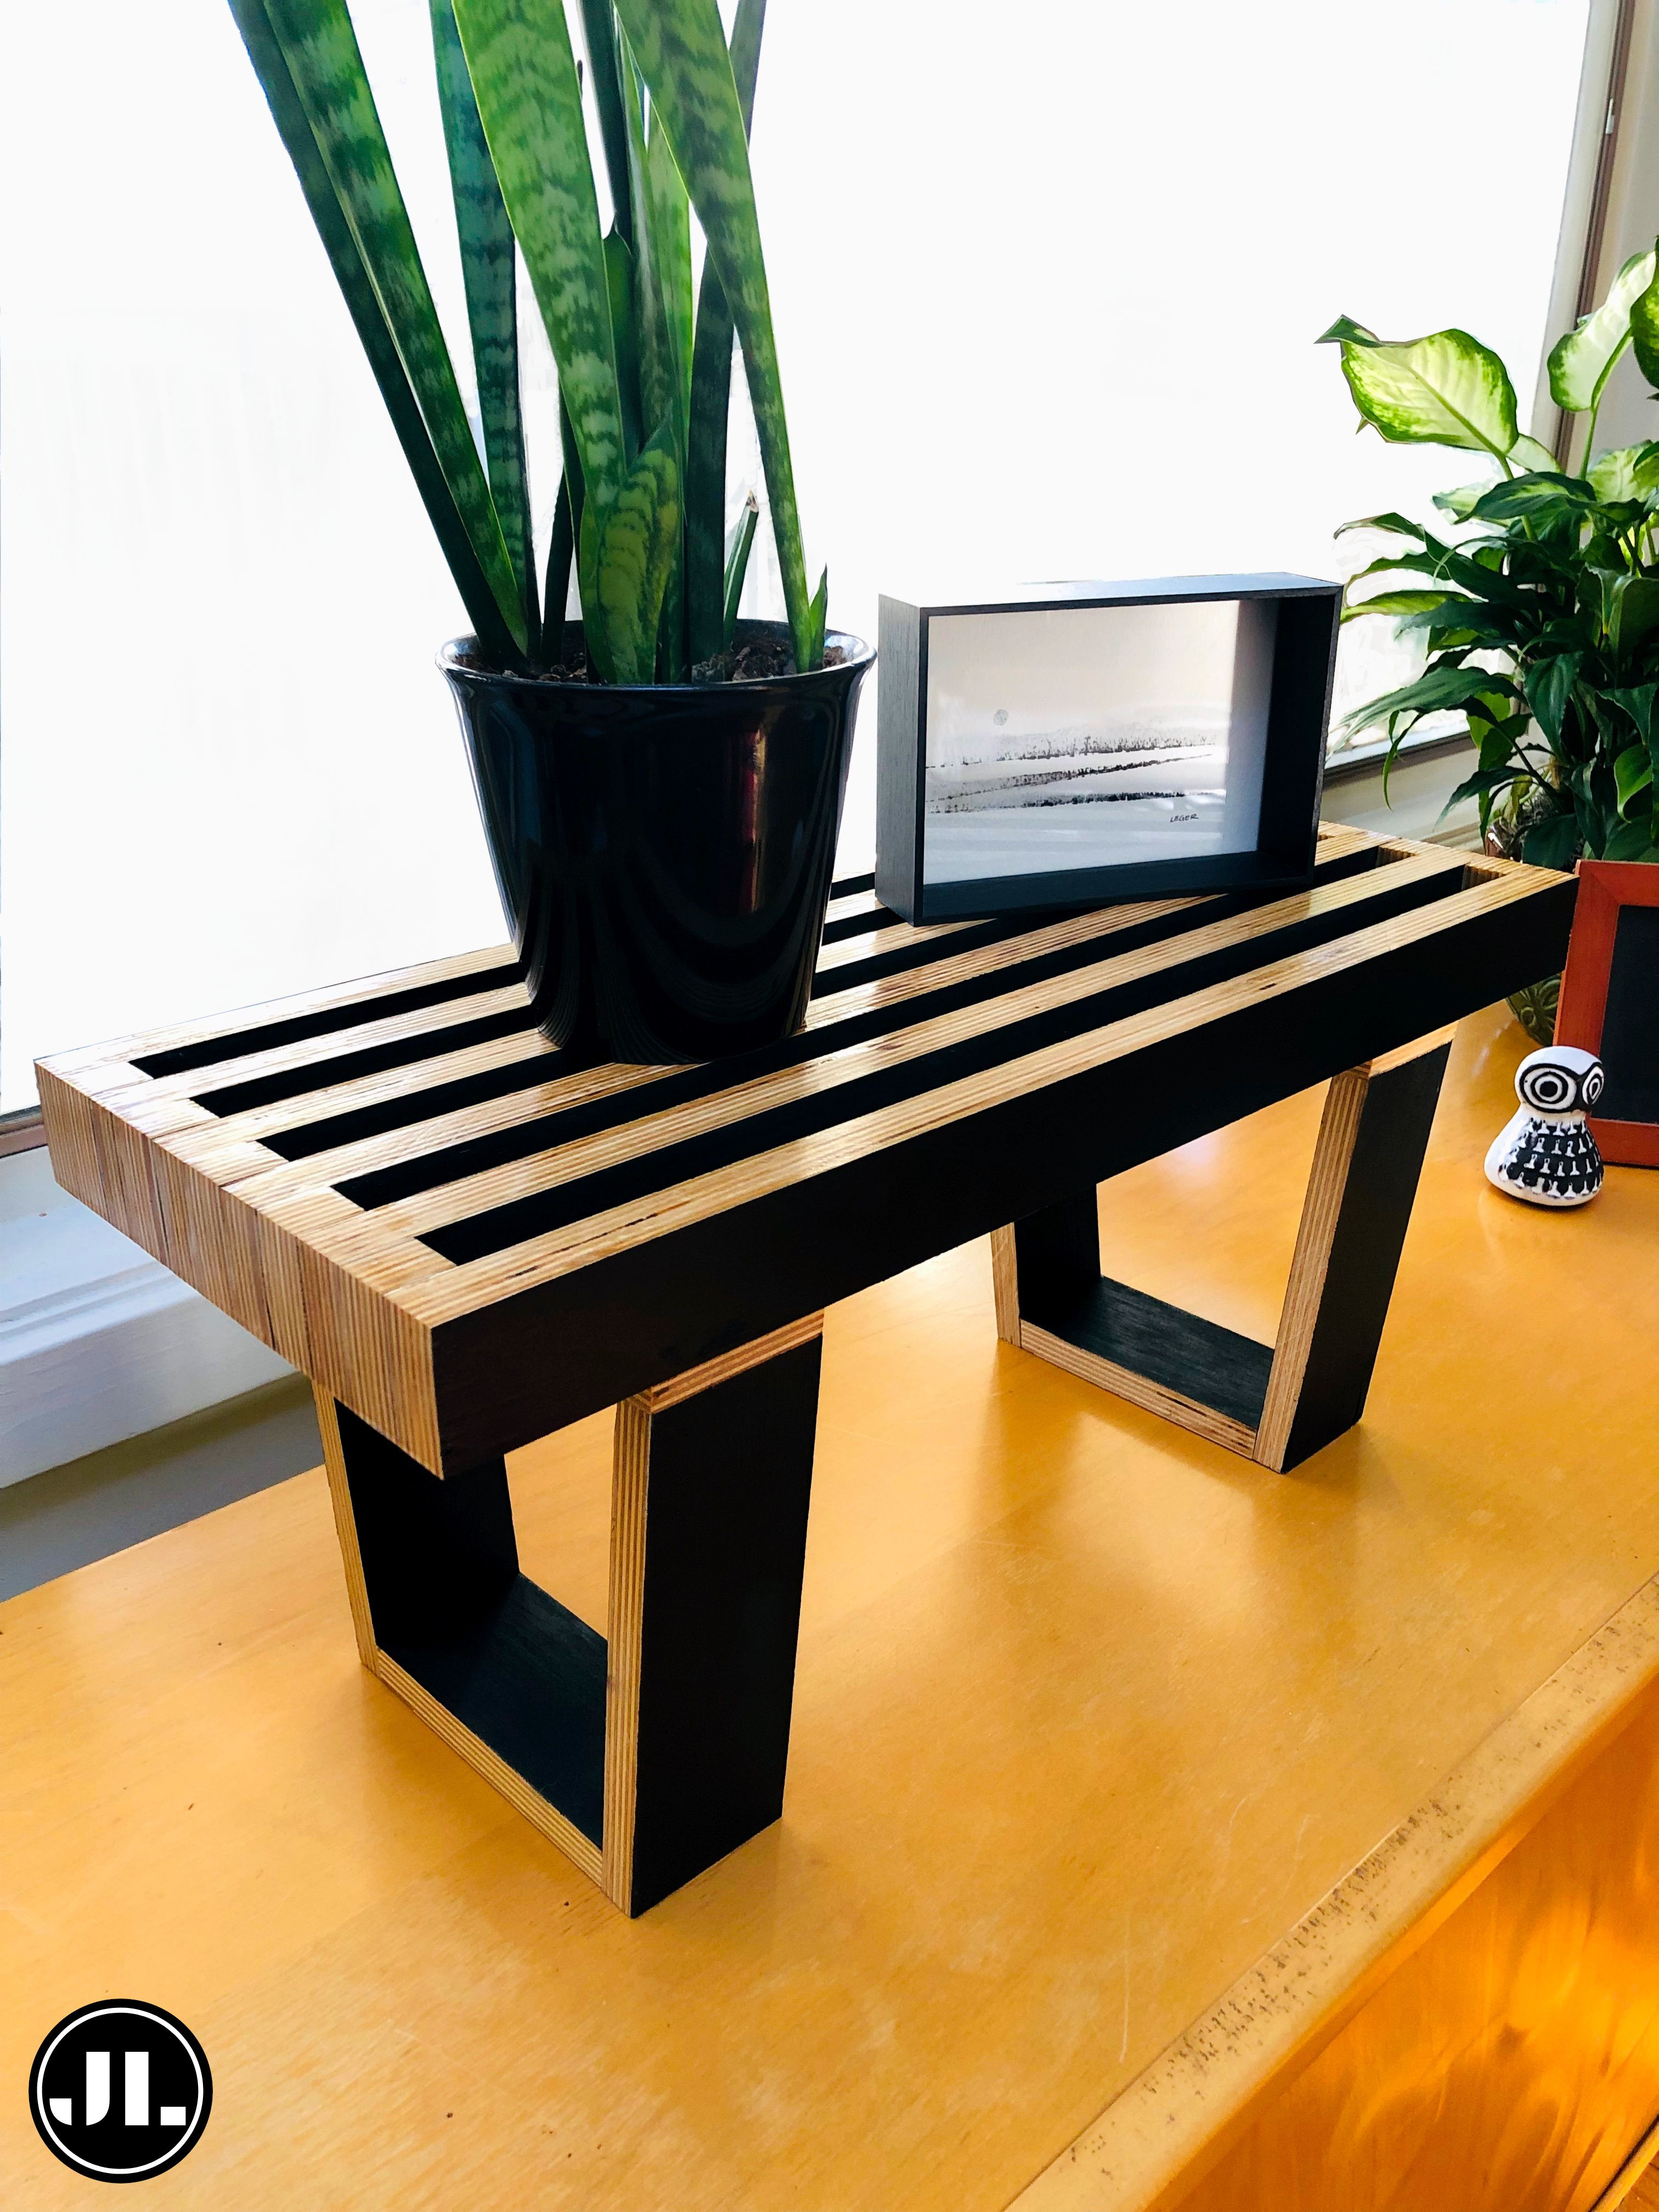 Magnificent Succulent Slat Bench Custom Sizes Available On Etsy Bench Caraccident5 Cool Chair Designs And Ideas Caraccident5Info